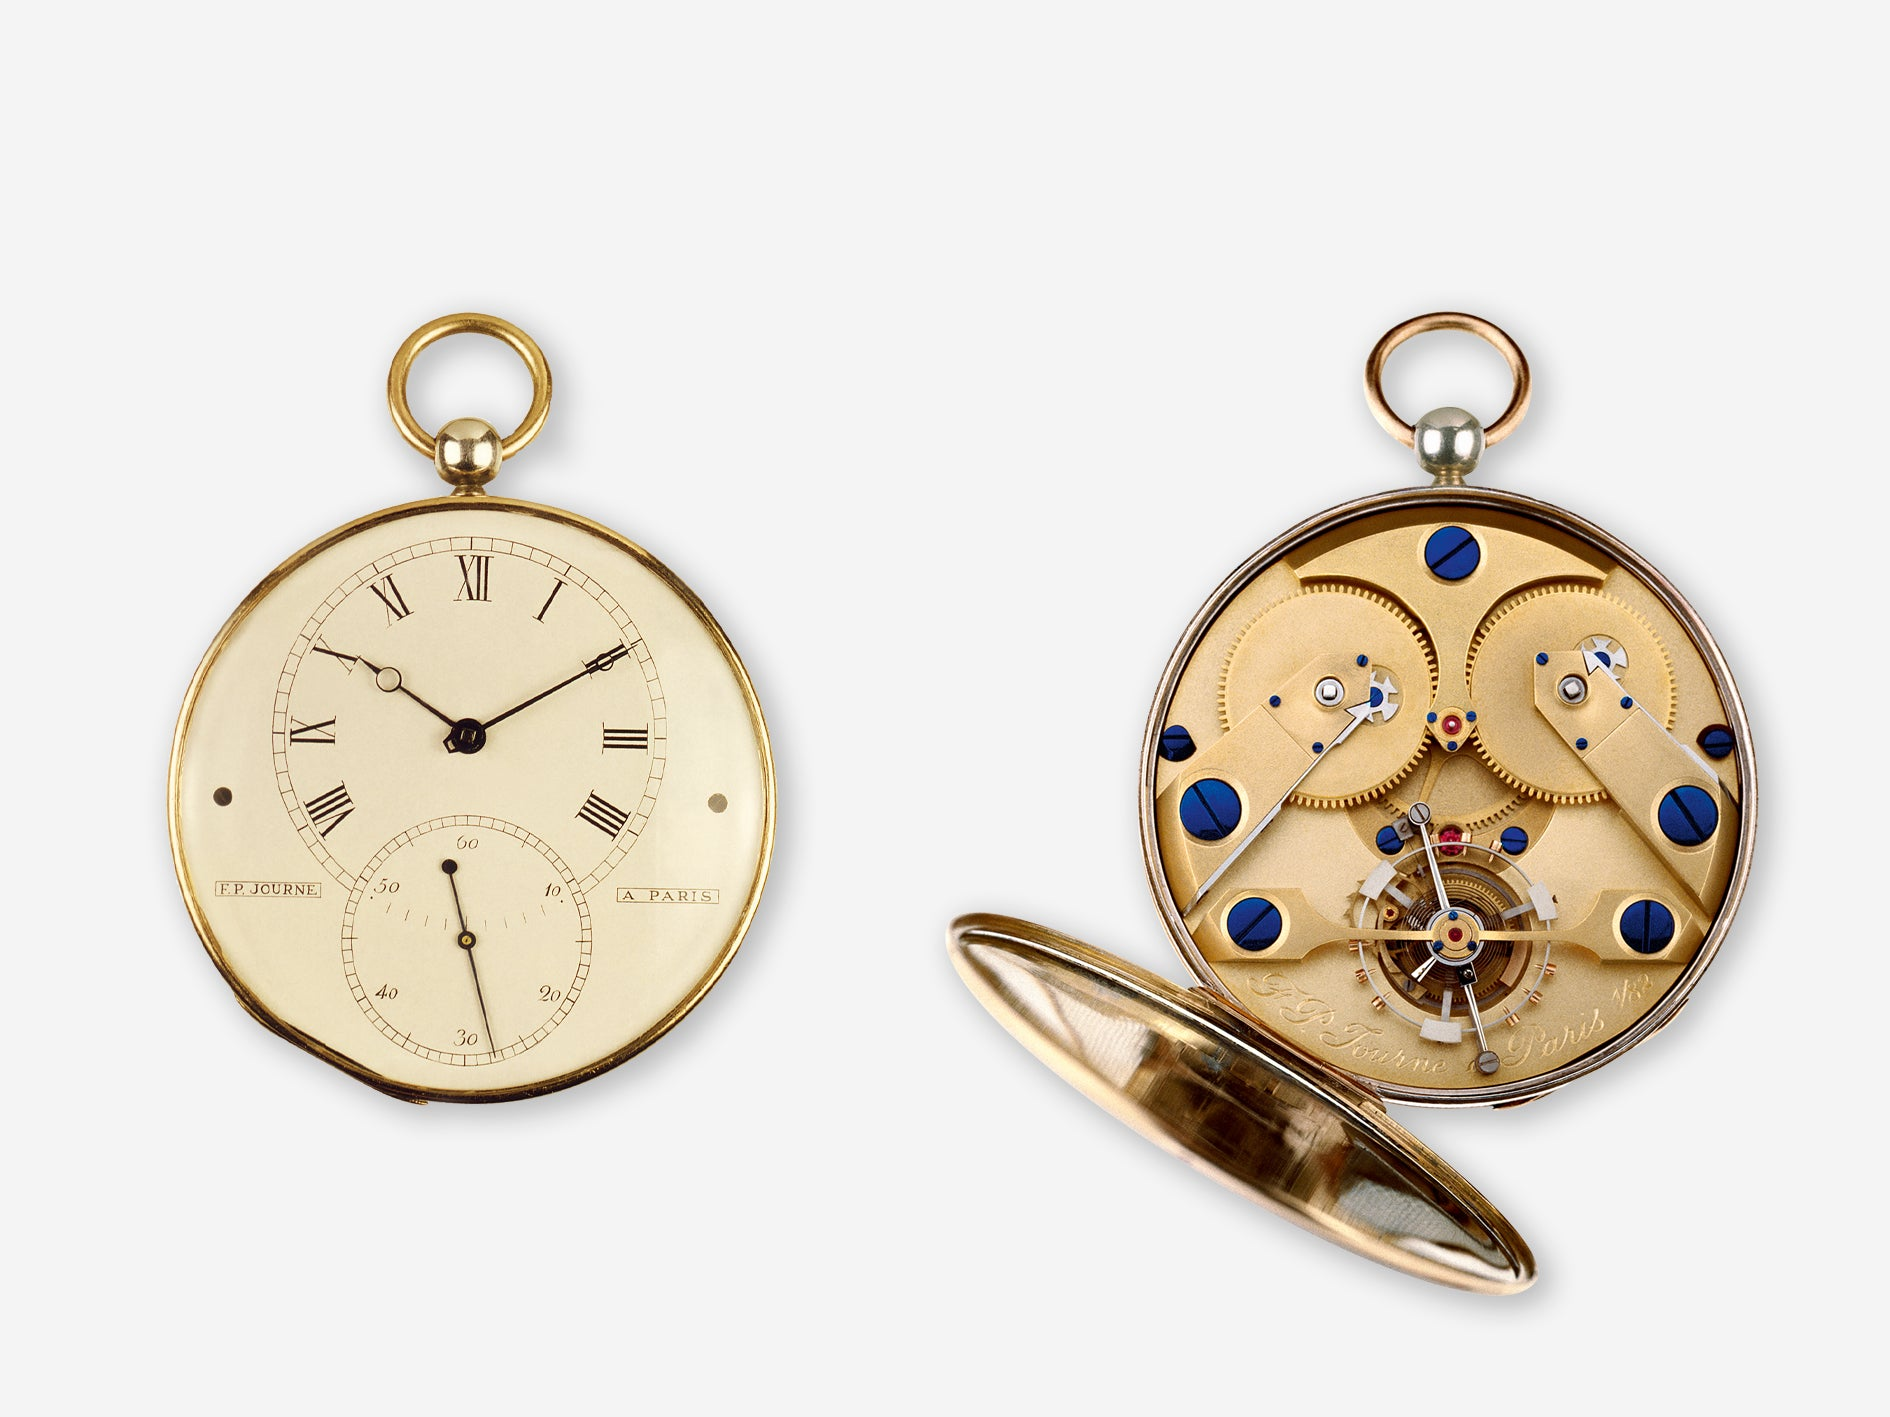 F.P. Journe's first attempt at a pocket watch with a tourbillon and double barrel springs